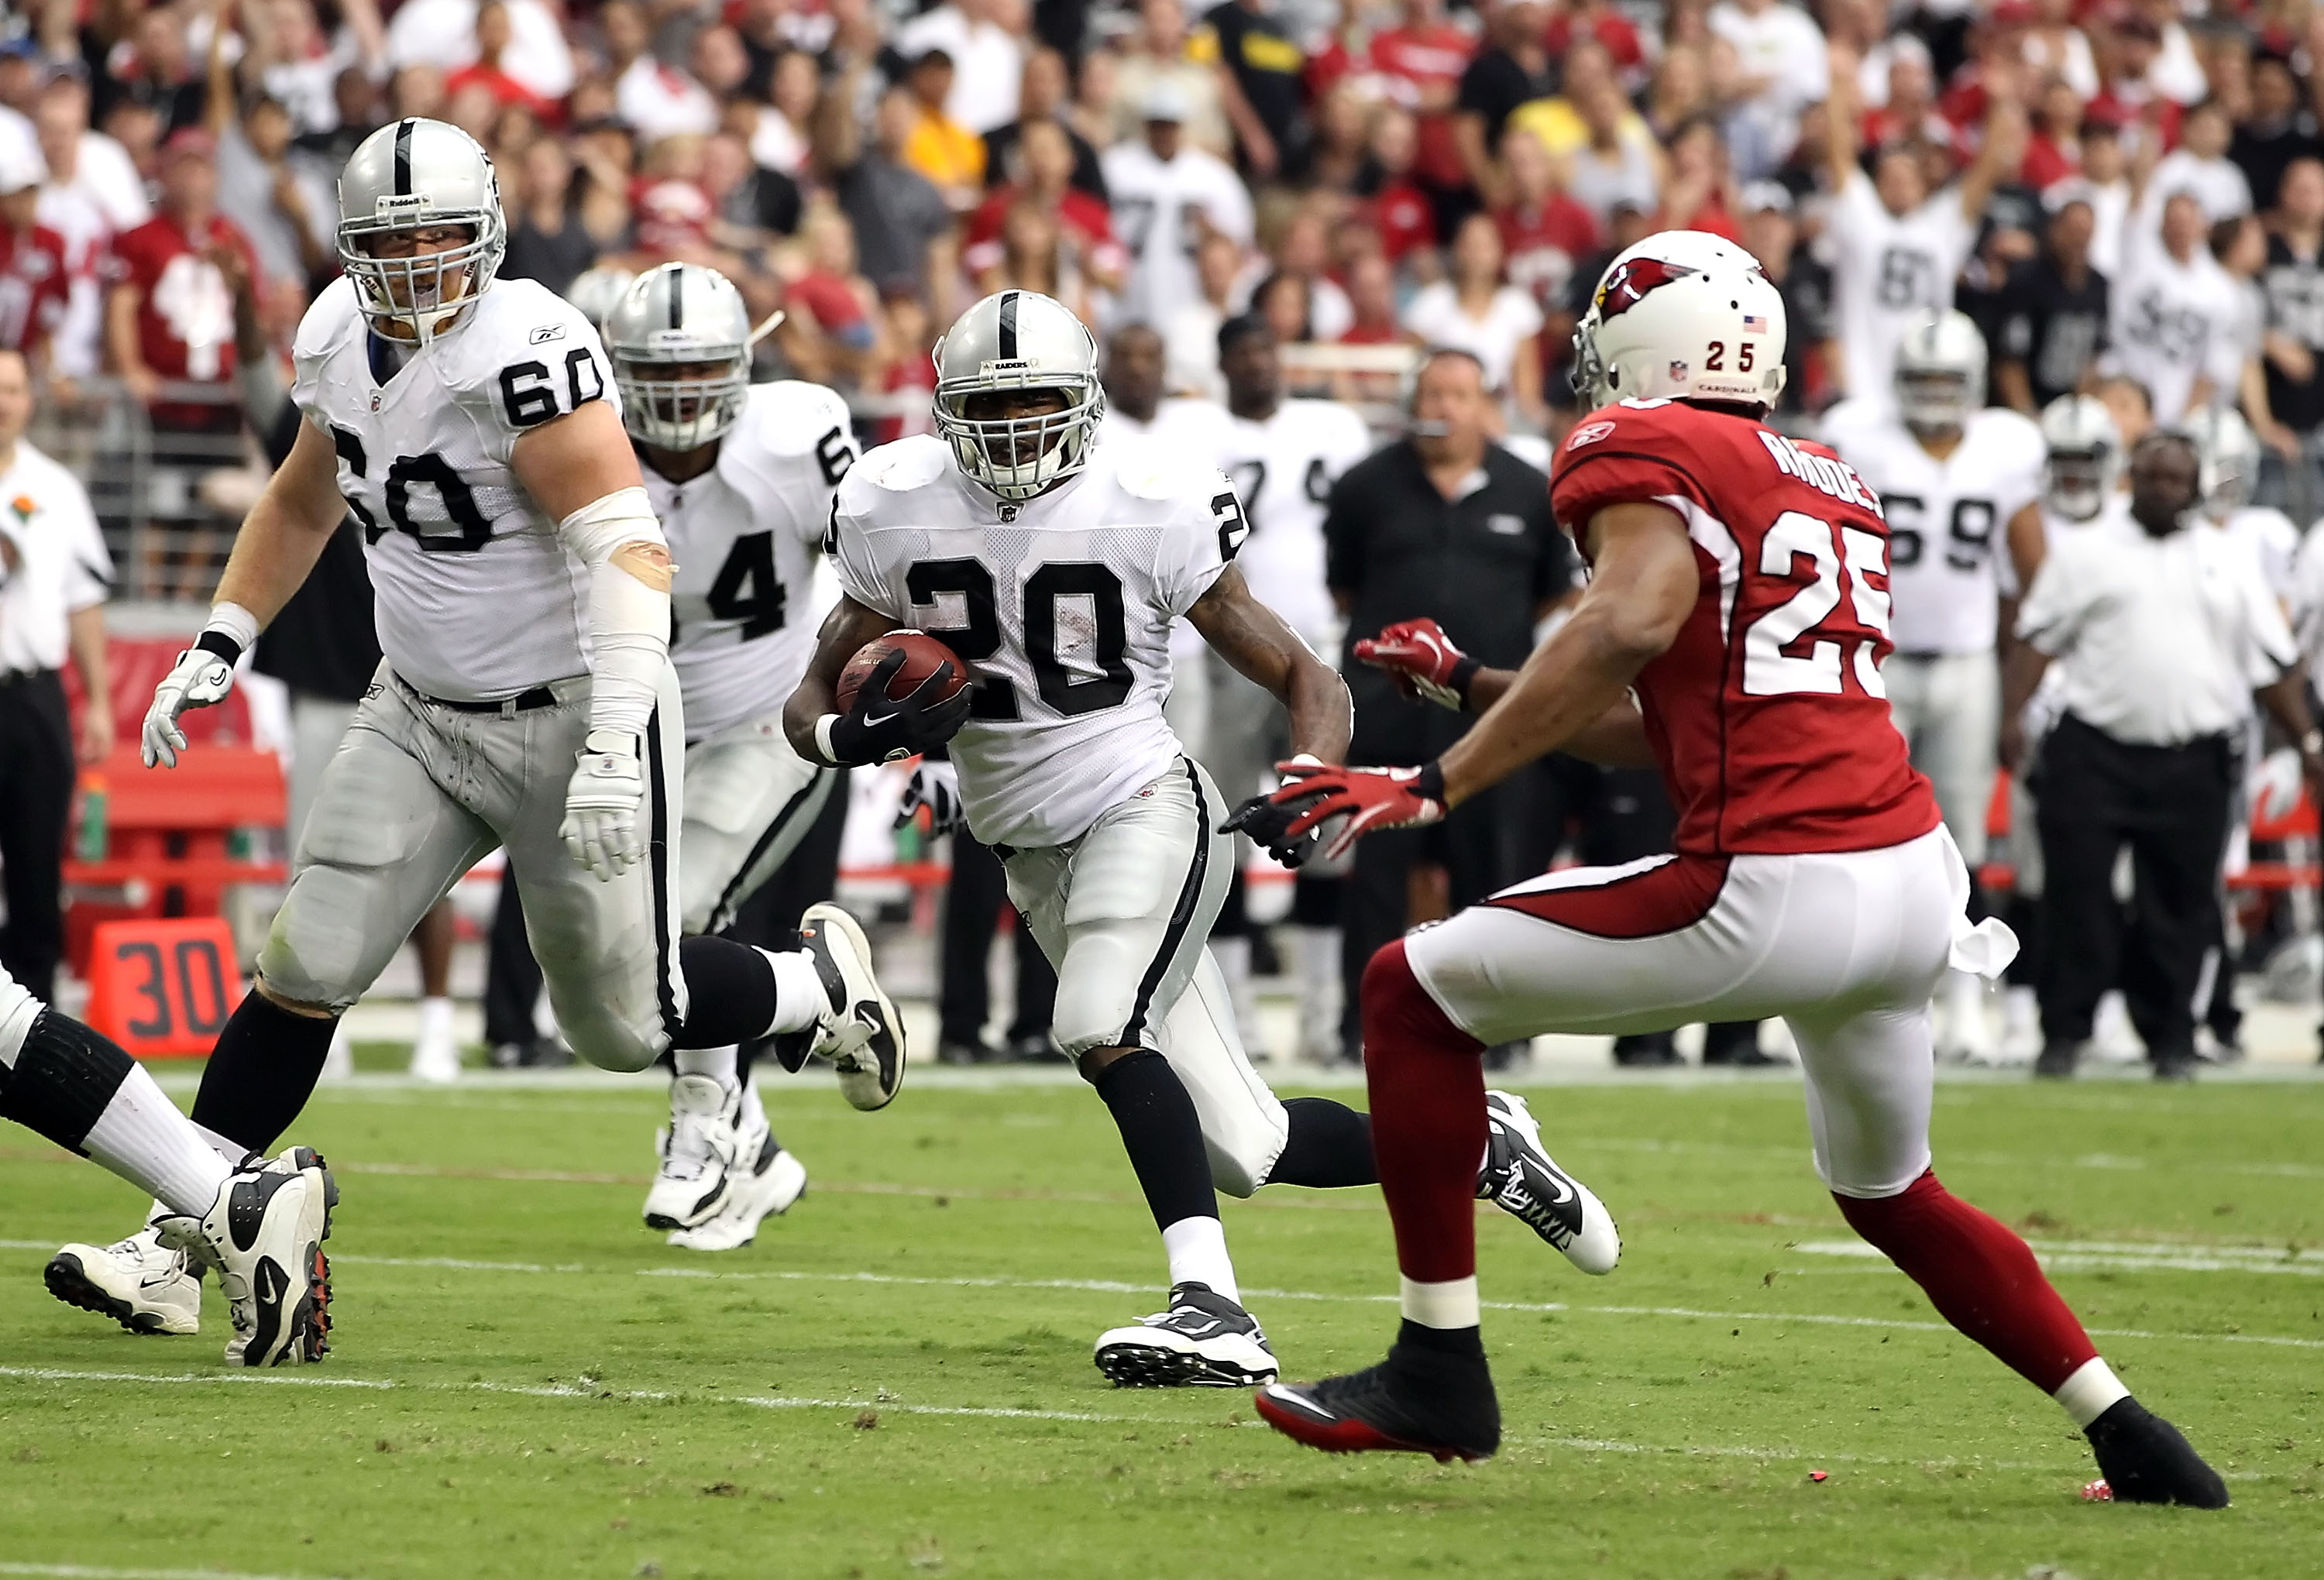 McFadden races through the open field against Arizona